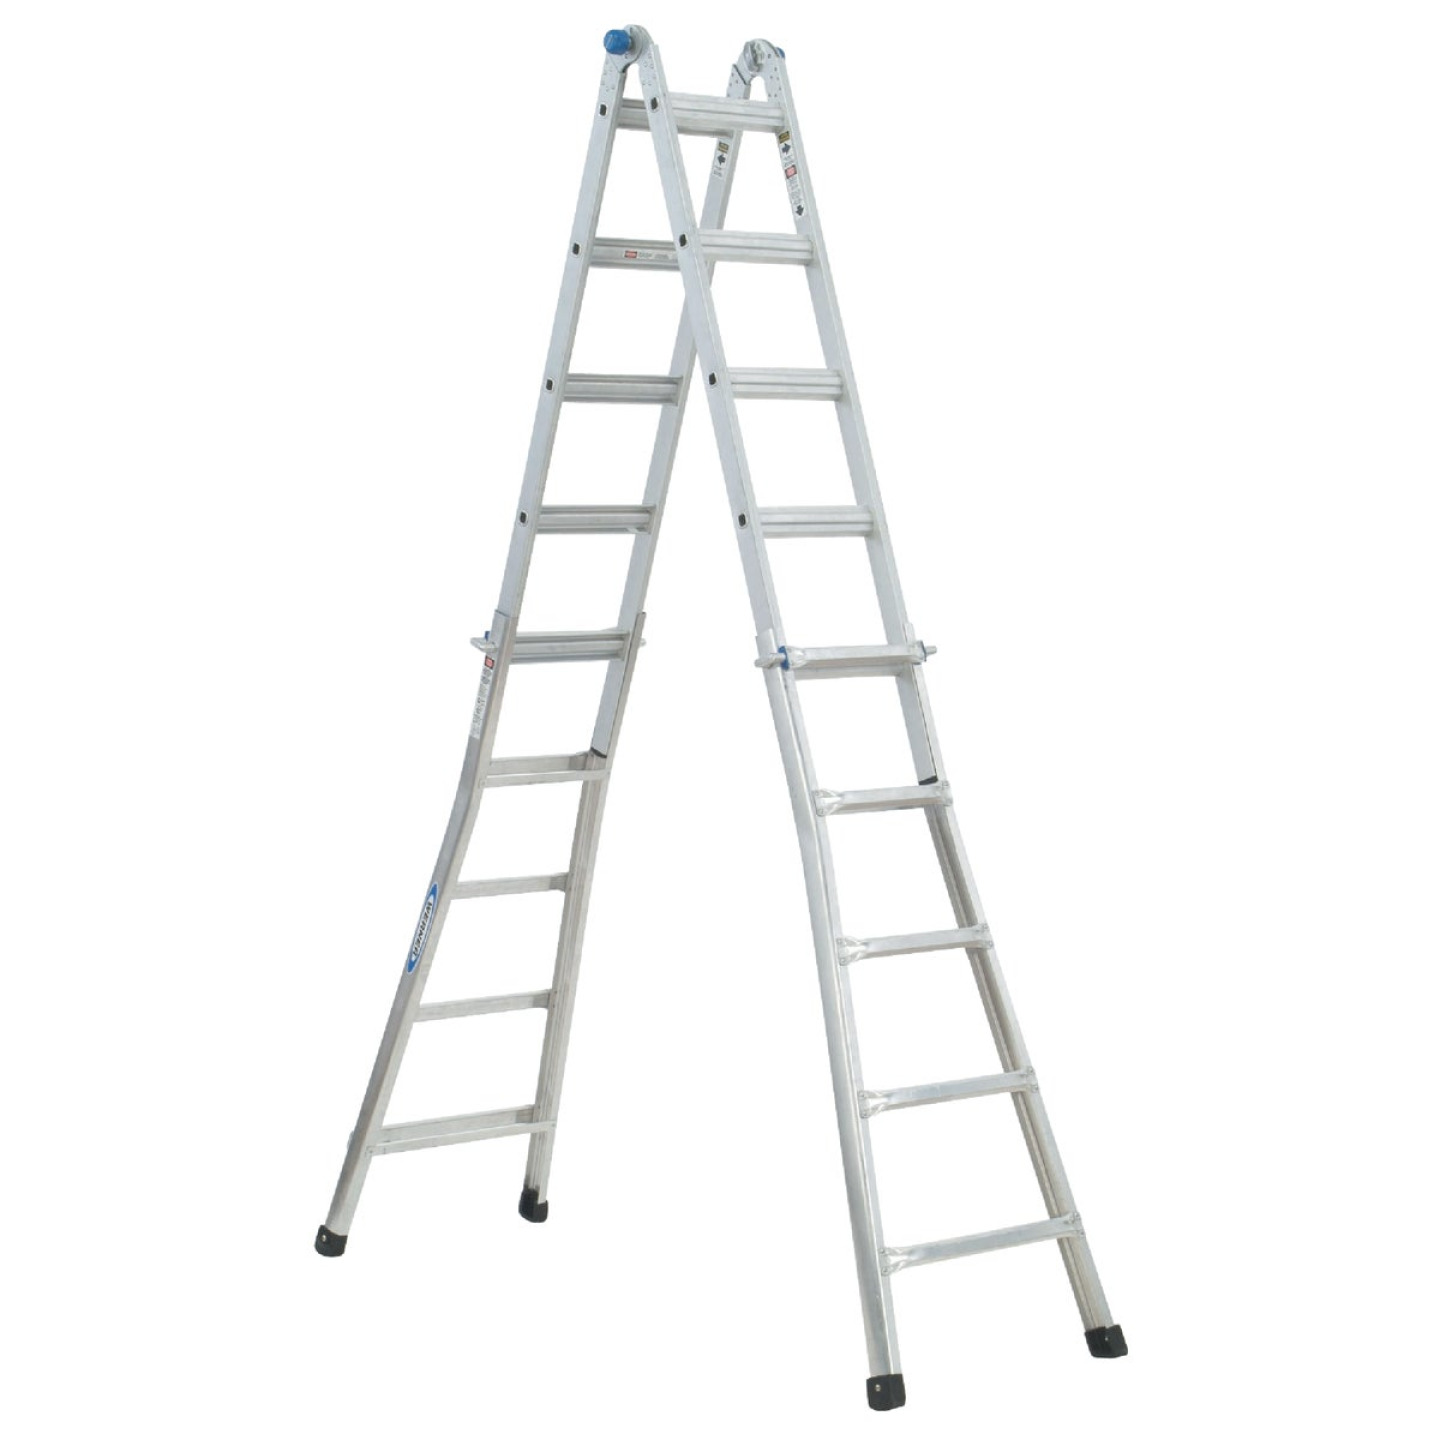 Werner 17 Ft. Aluminum Multi-Position Telescoping Ladder with 300 Lb. Load Capacity Type IA Ladder Rating Image 12